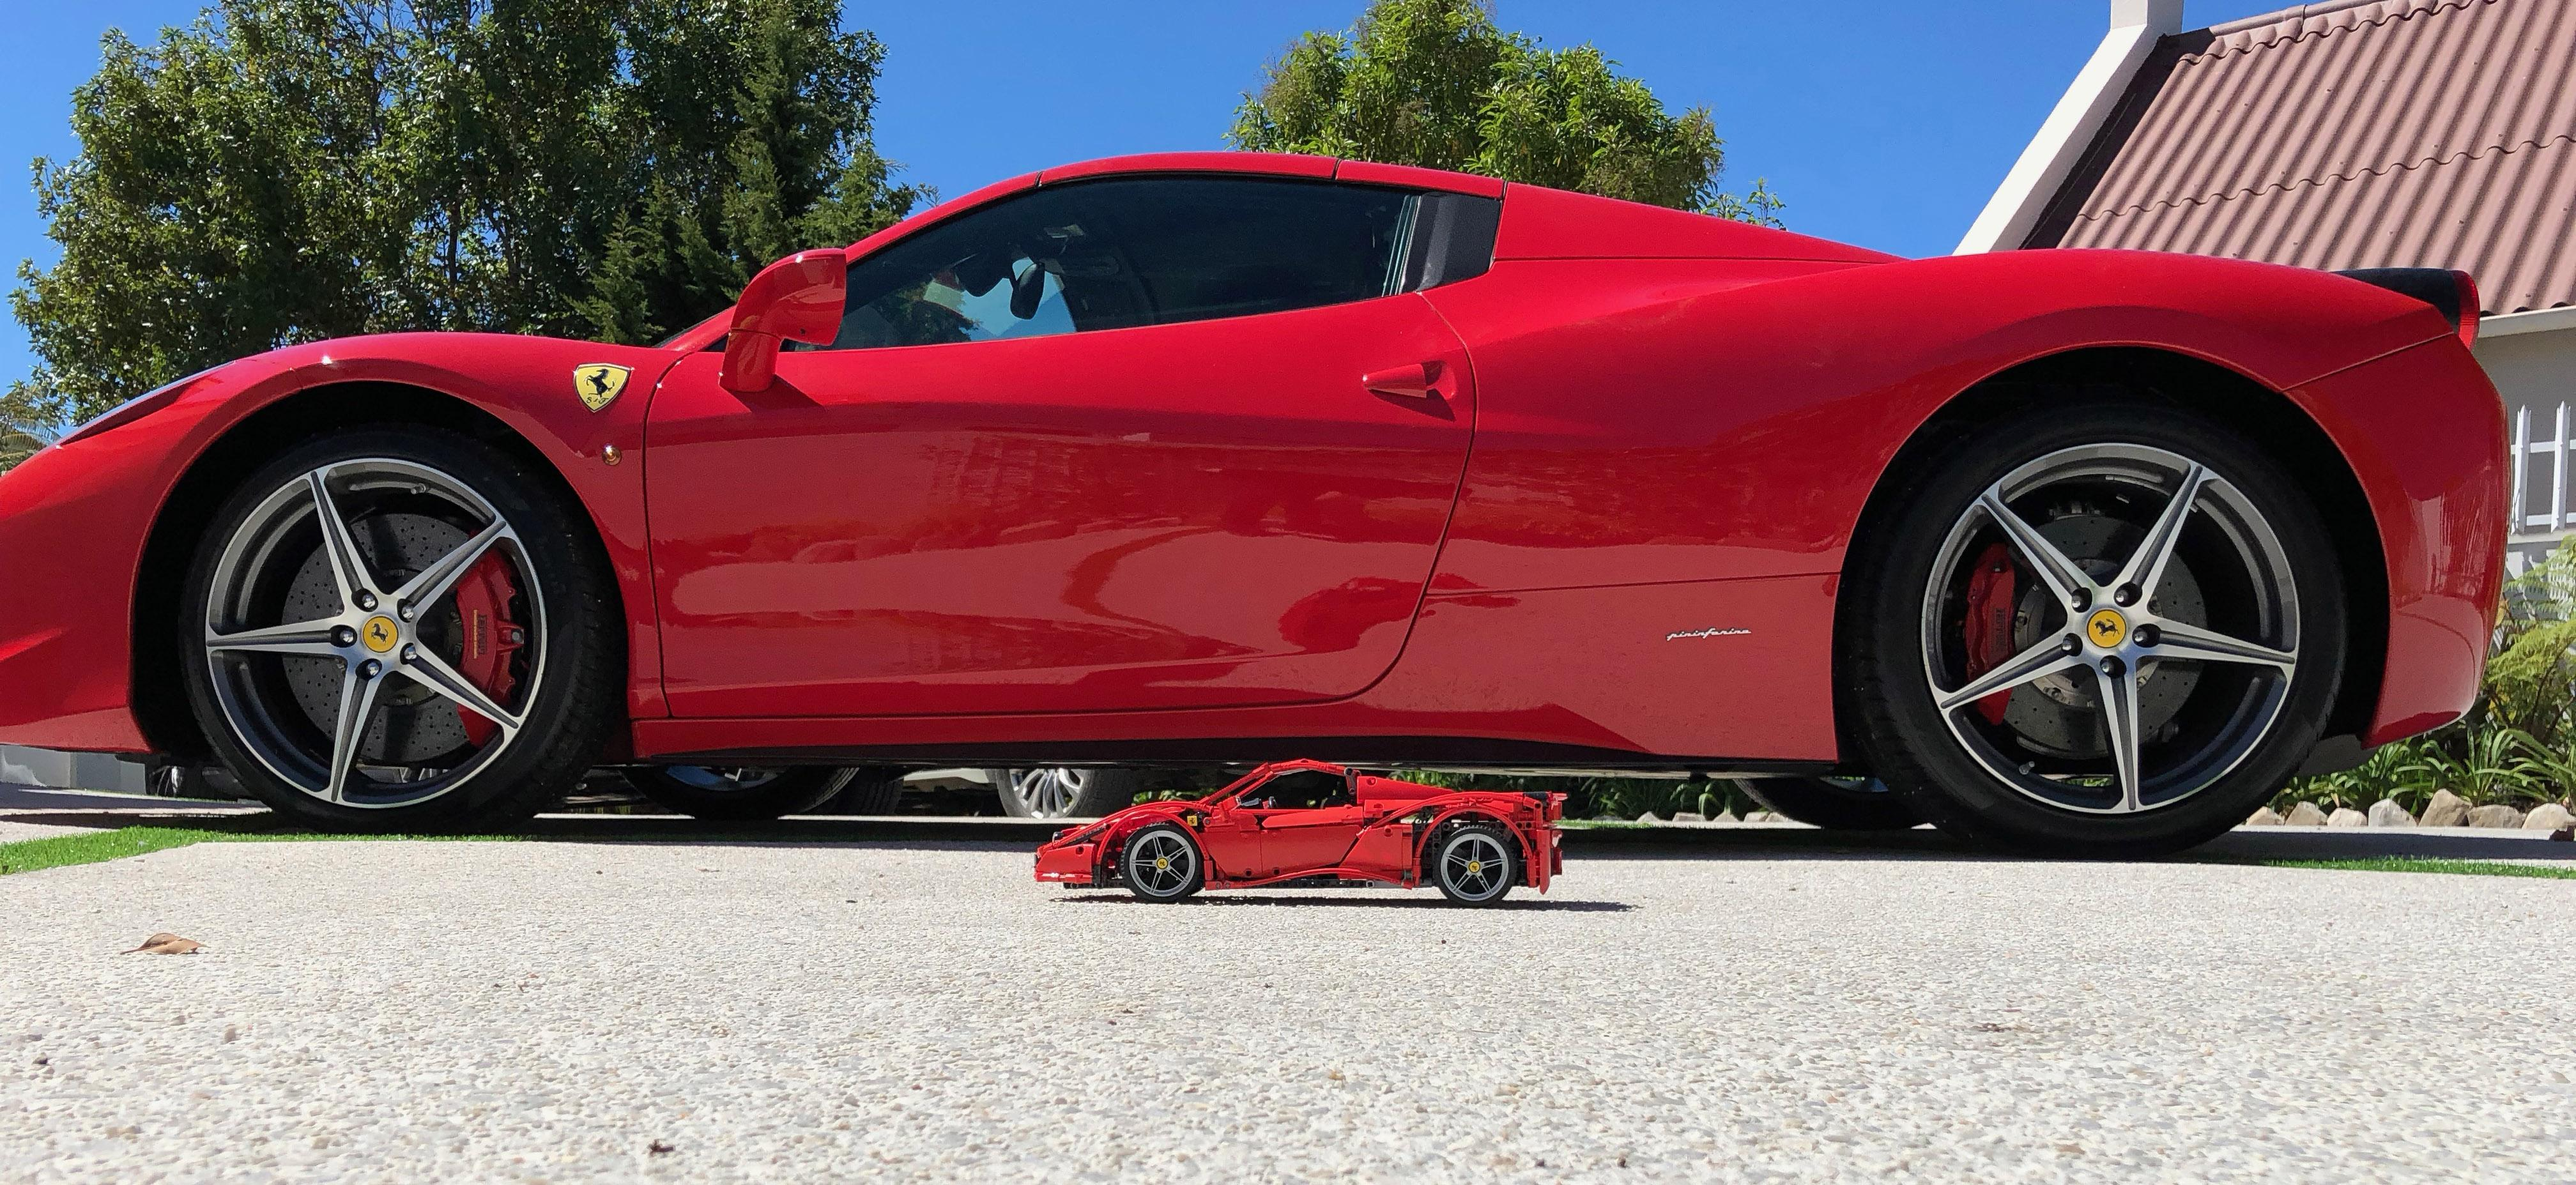 Ferrari 458 Spider Gets Its Own Lego Model With Working Retractable